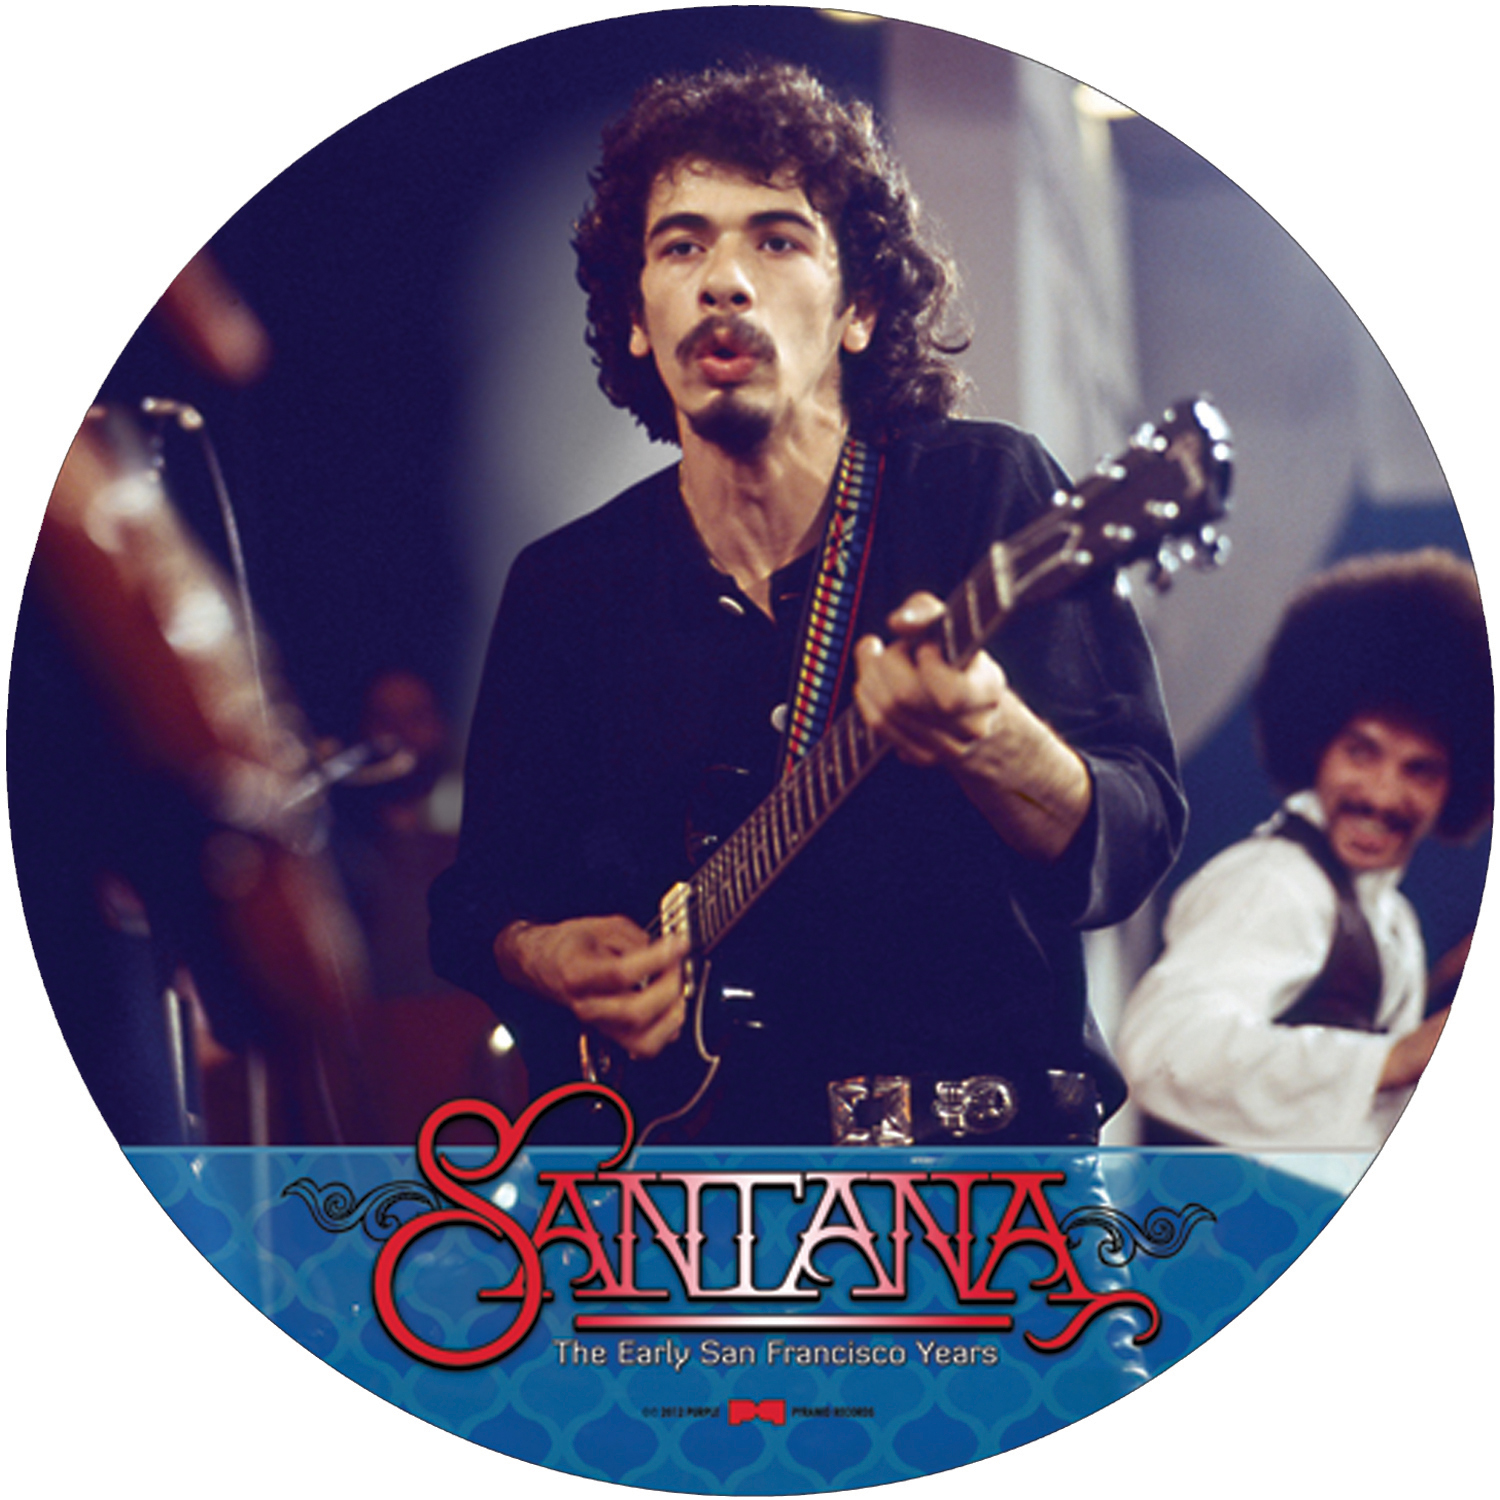 Santana - The Early San Francisco Years (LP)